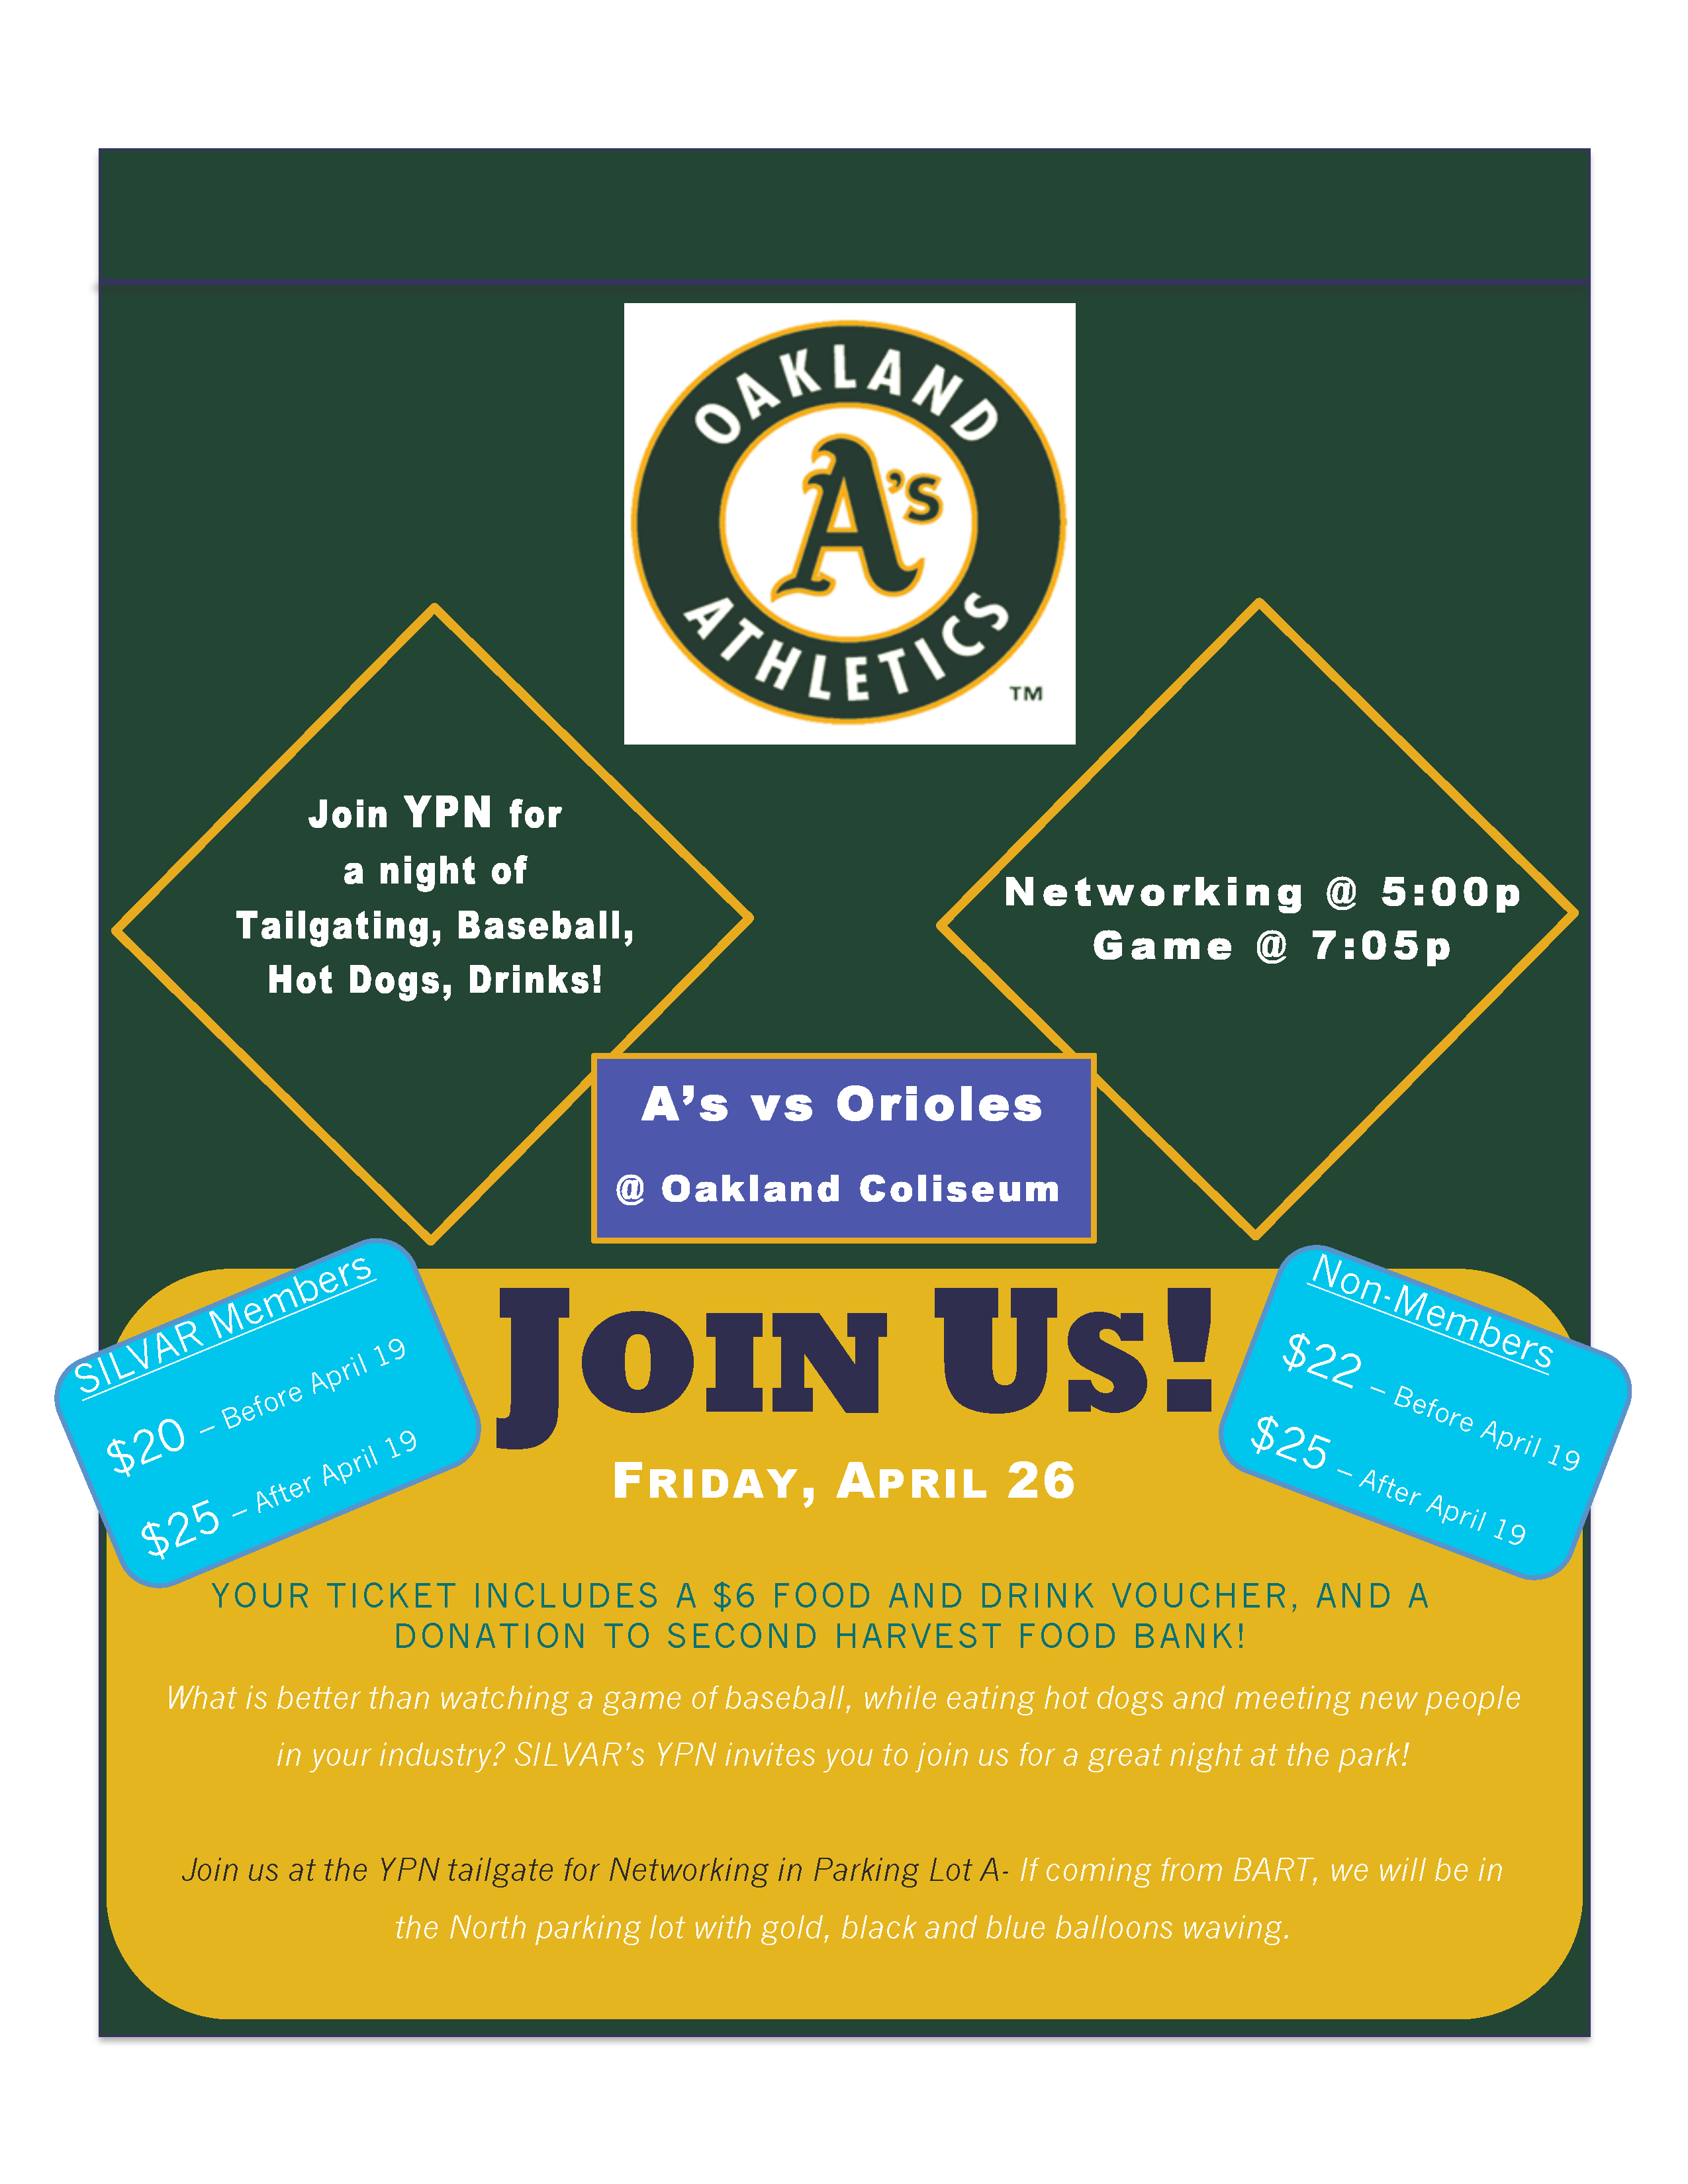 SILVAR YPN flyer for Take Me Out to the Ball Game!